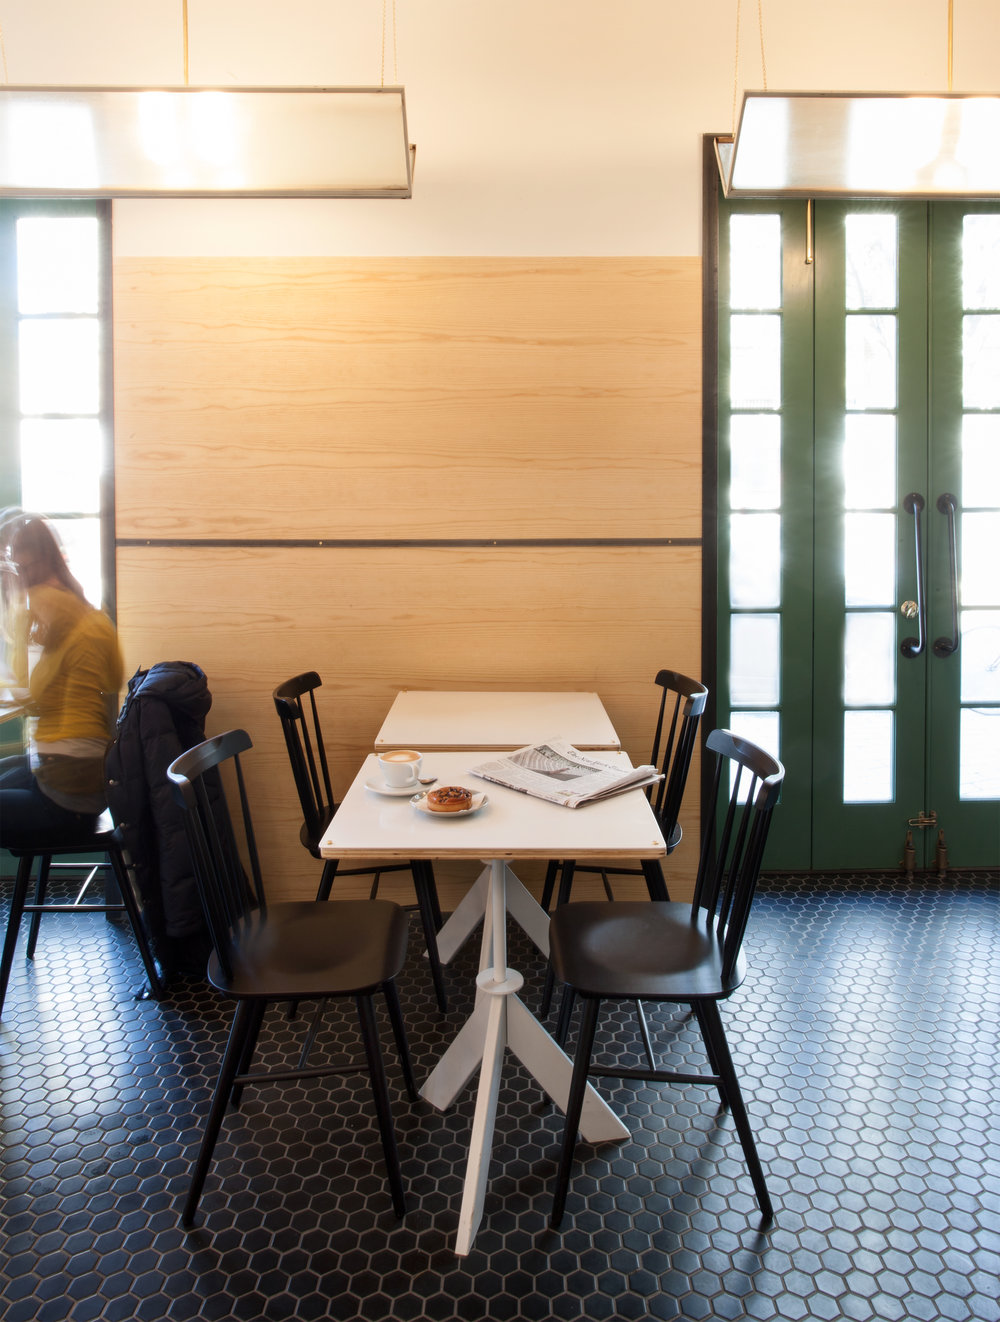 Reserve A Table - Big meeting + no place to have it?Book a table + we'll make sure there's space for you and your group when you need it. Plus get 15% off cafe items. $20/hr Table for 6  |  $10/hr Table for 2Reserve Now